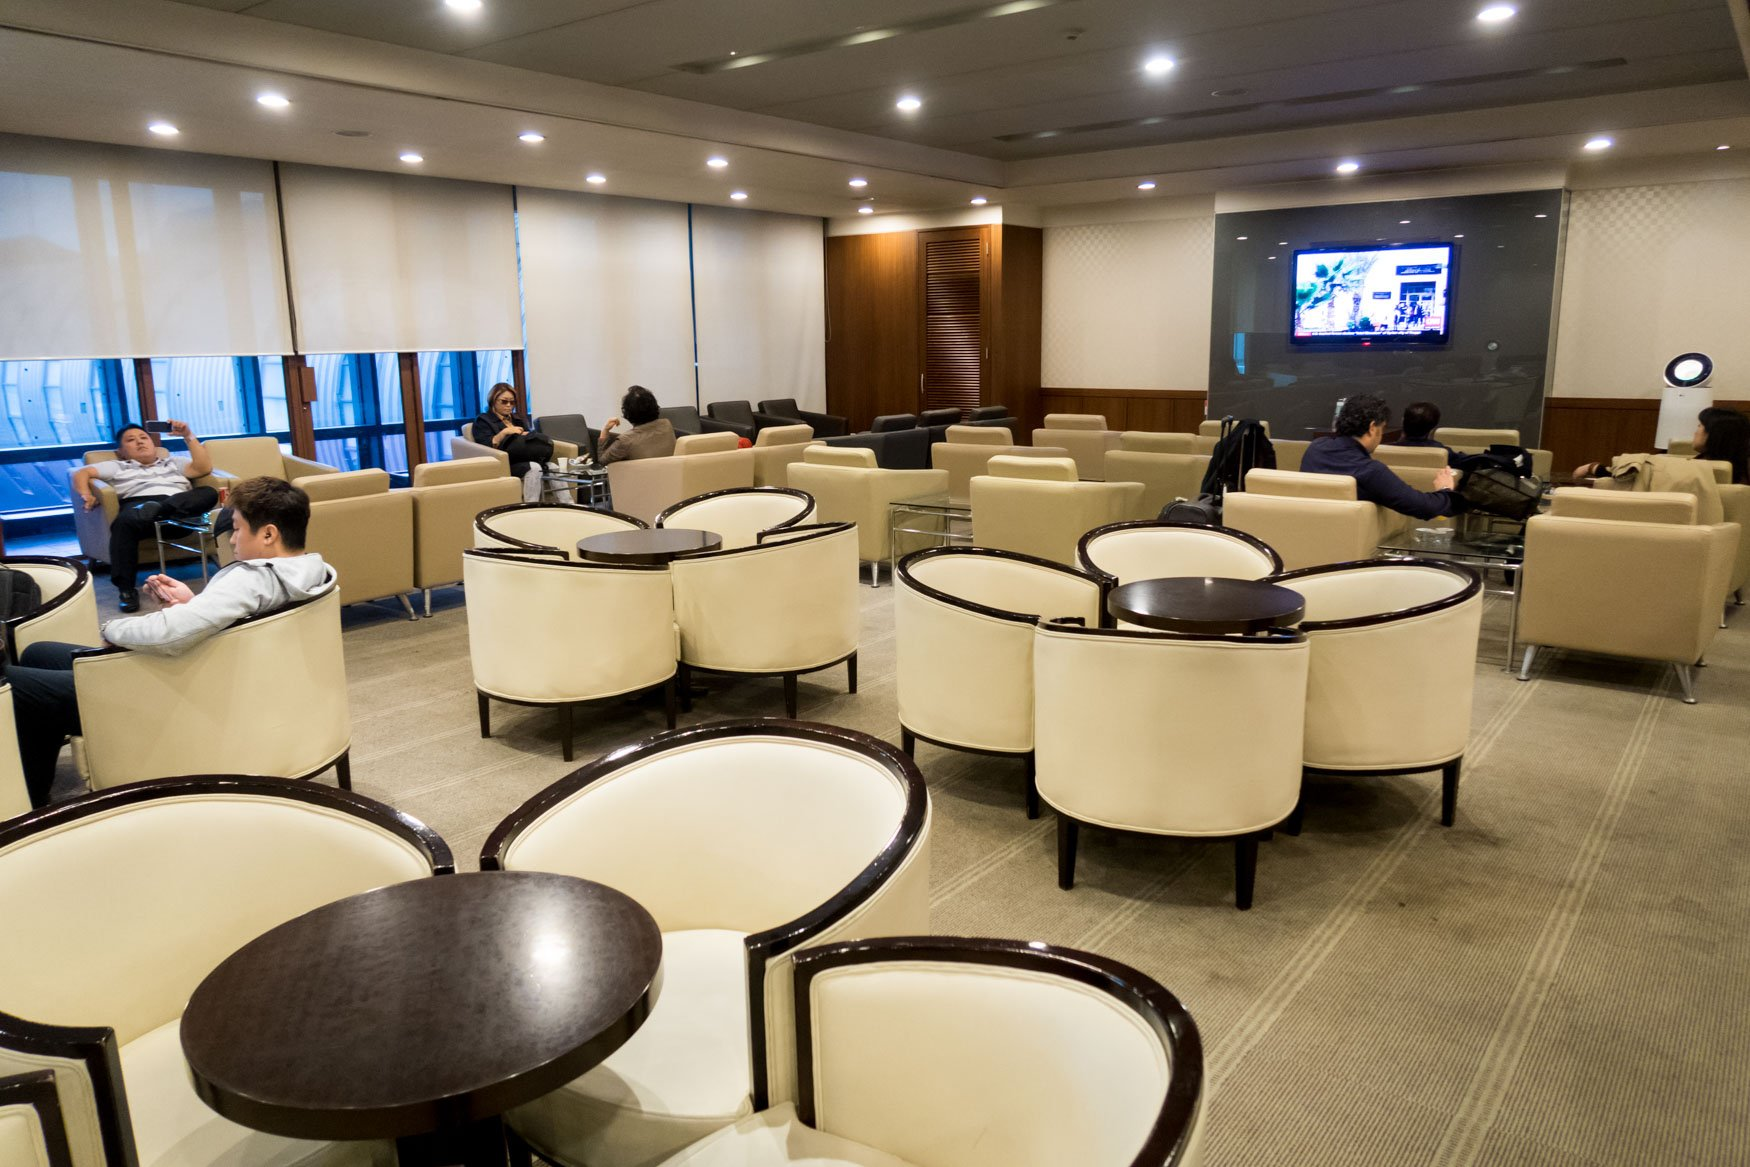 Overview of KAL Lounge at Gimpo